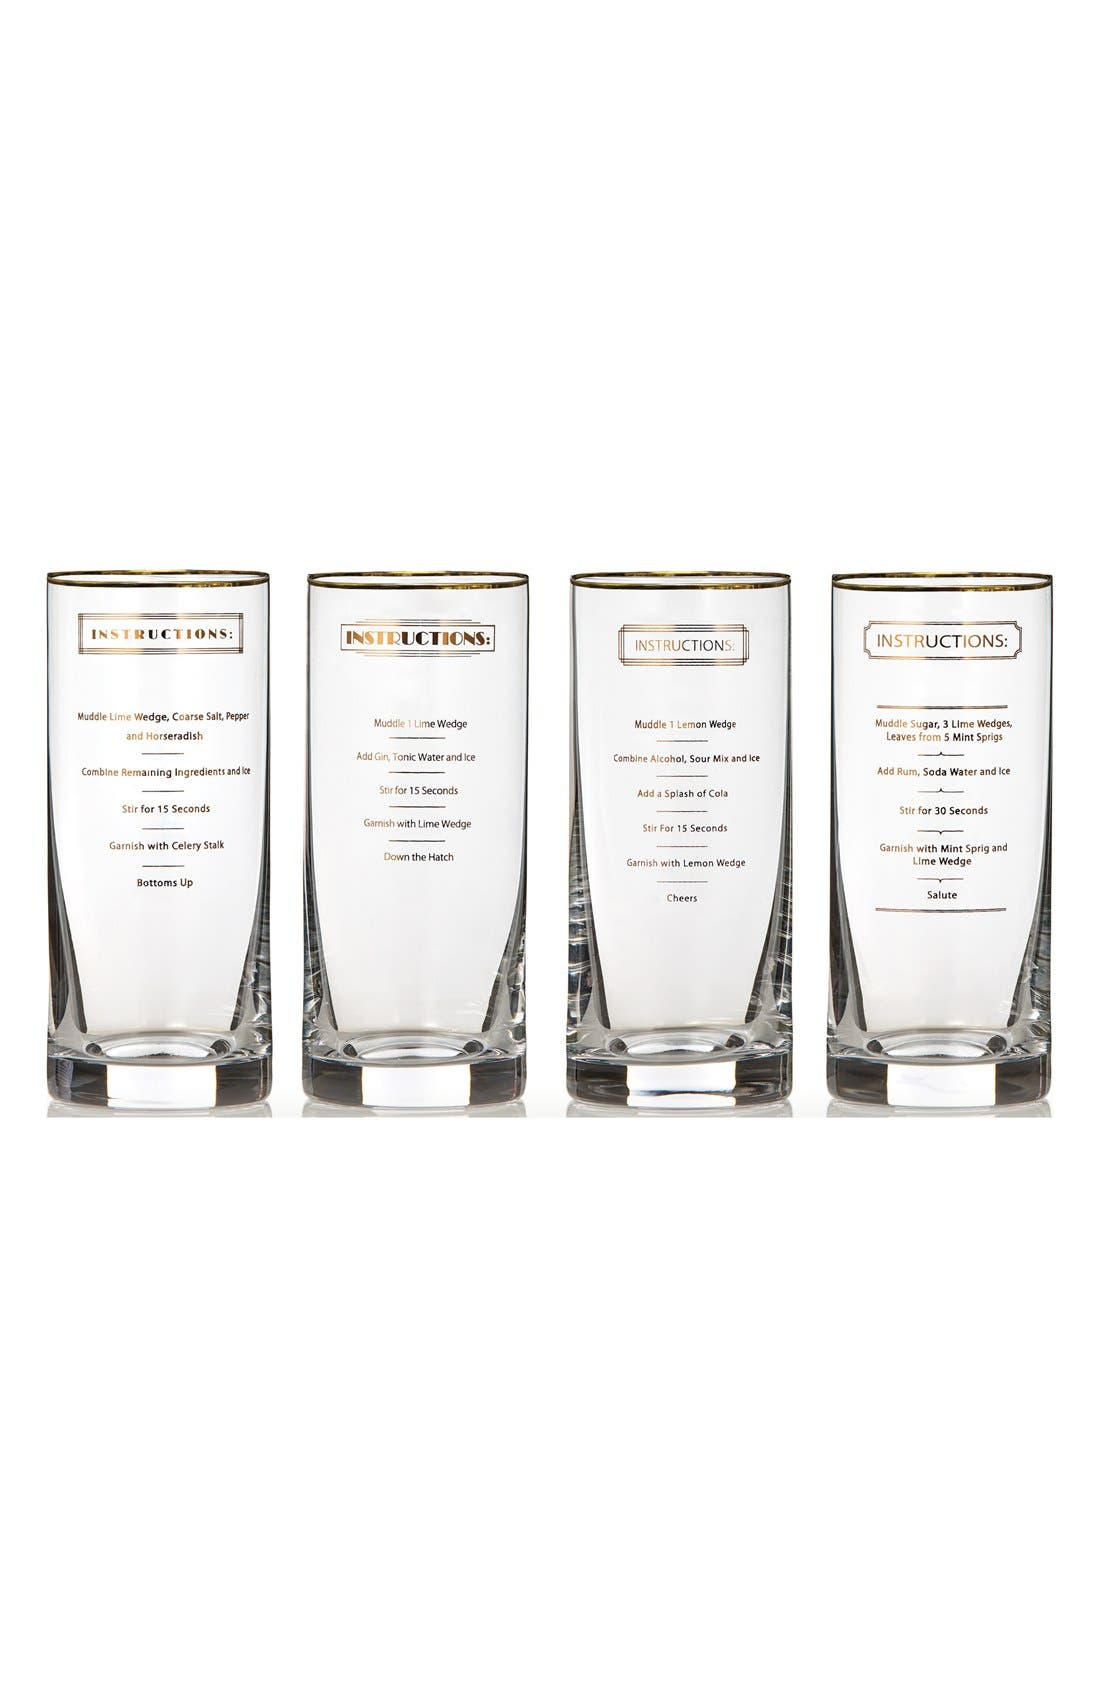 Alternate Image 1 Selected - Marquis by Waterford 'Recipe' Highball Glasses (Set of 4)